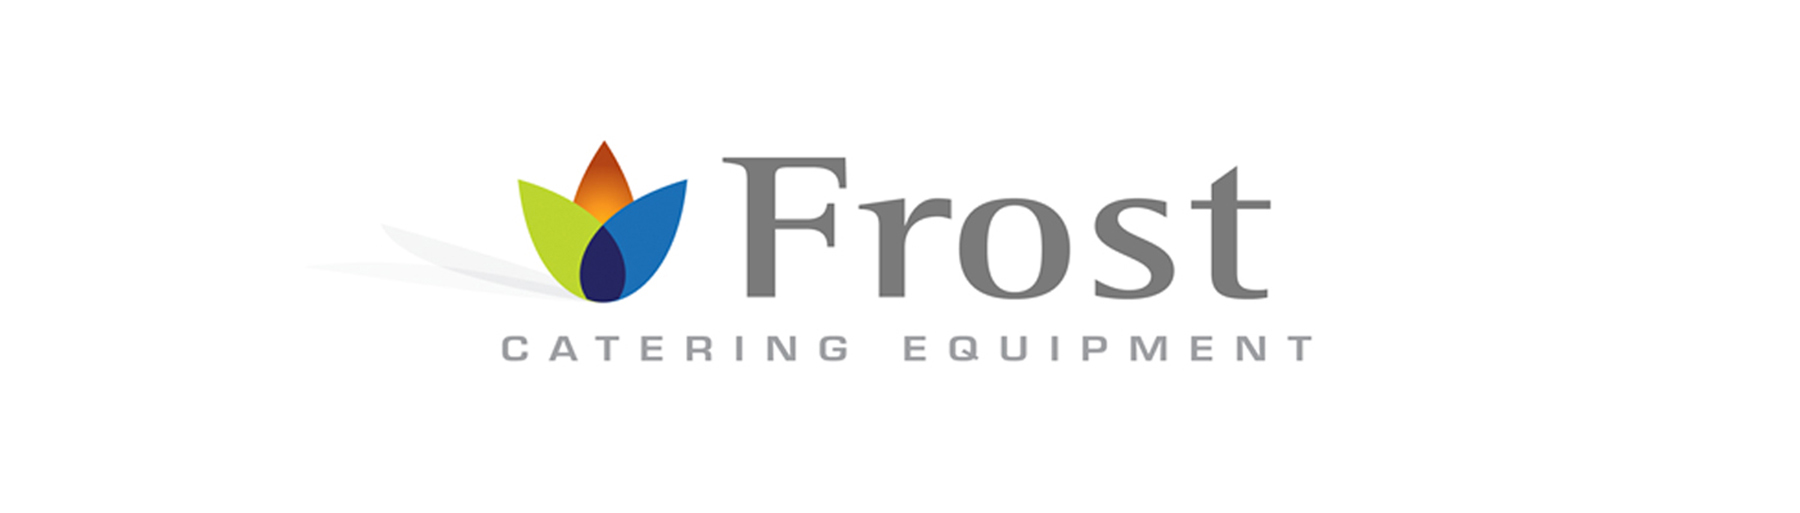 Frost Catering Equipment Logo Banner